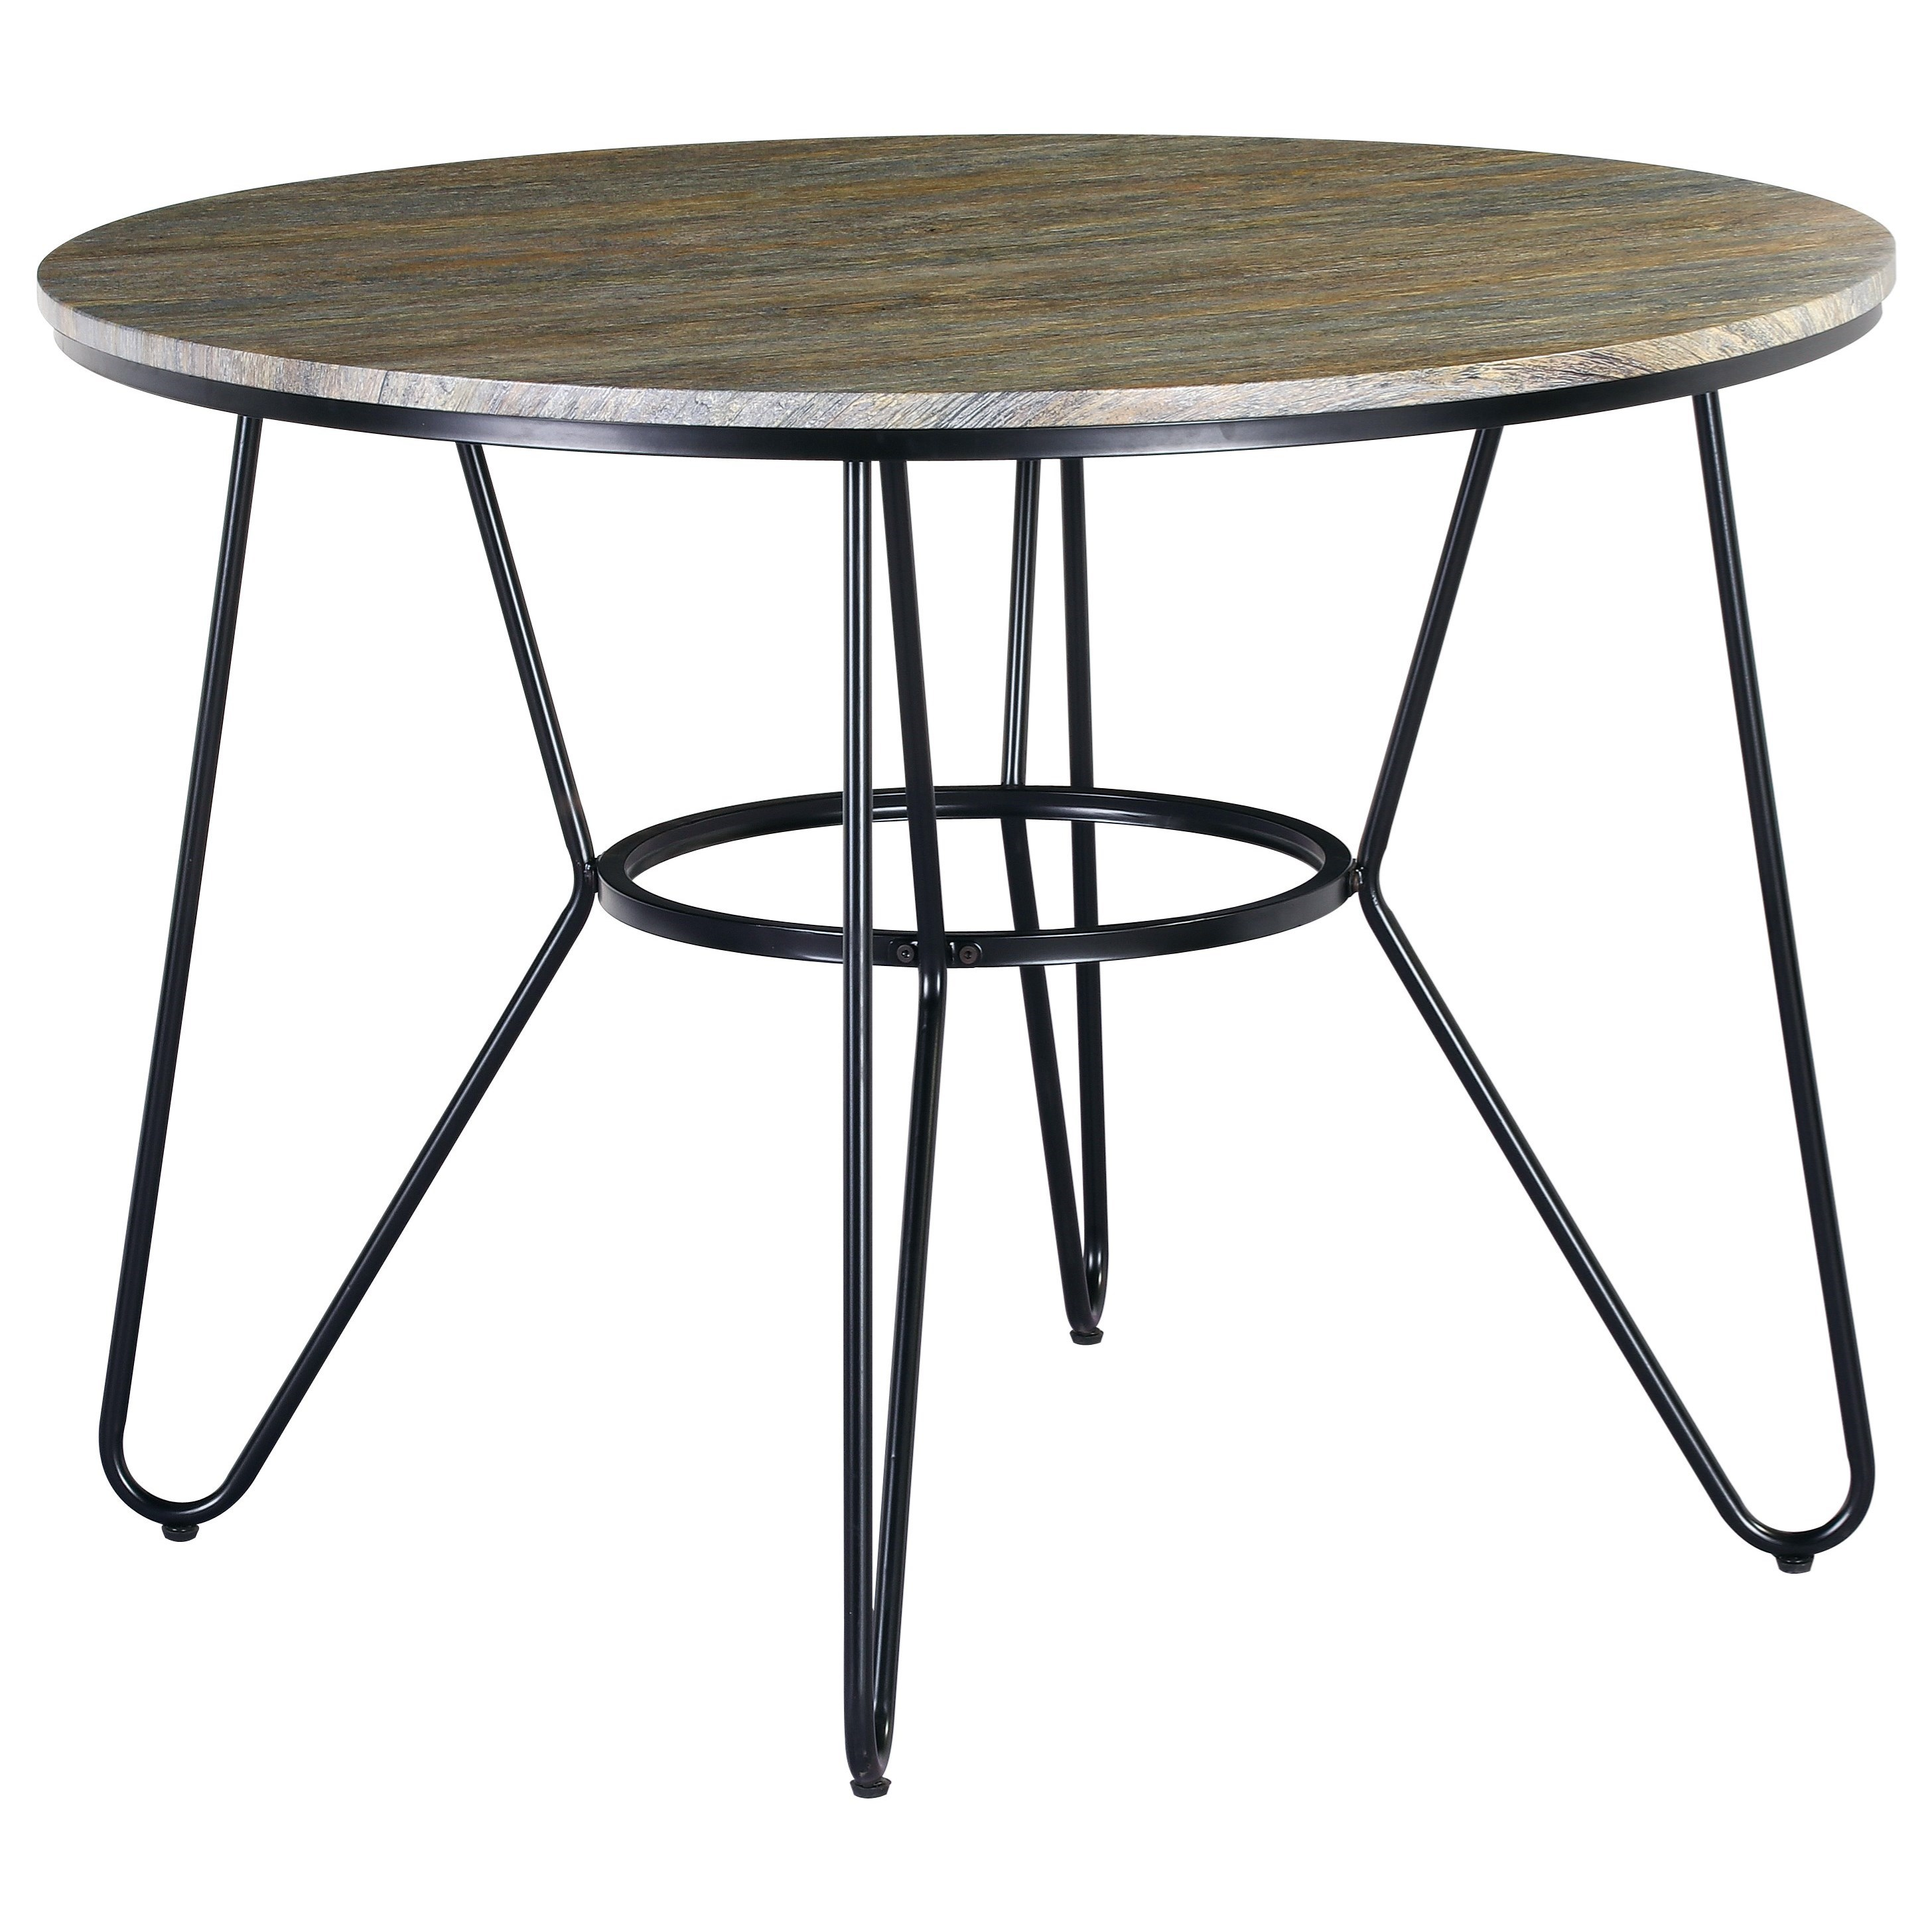 Emmett Round Dining Table by Emerald at Northeast Factory Direct